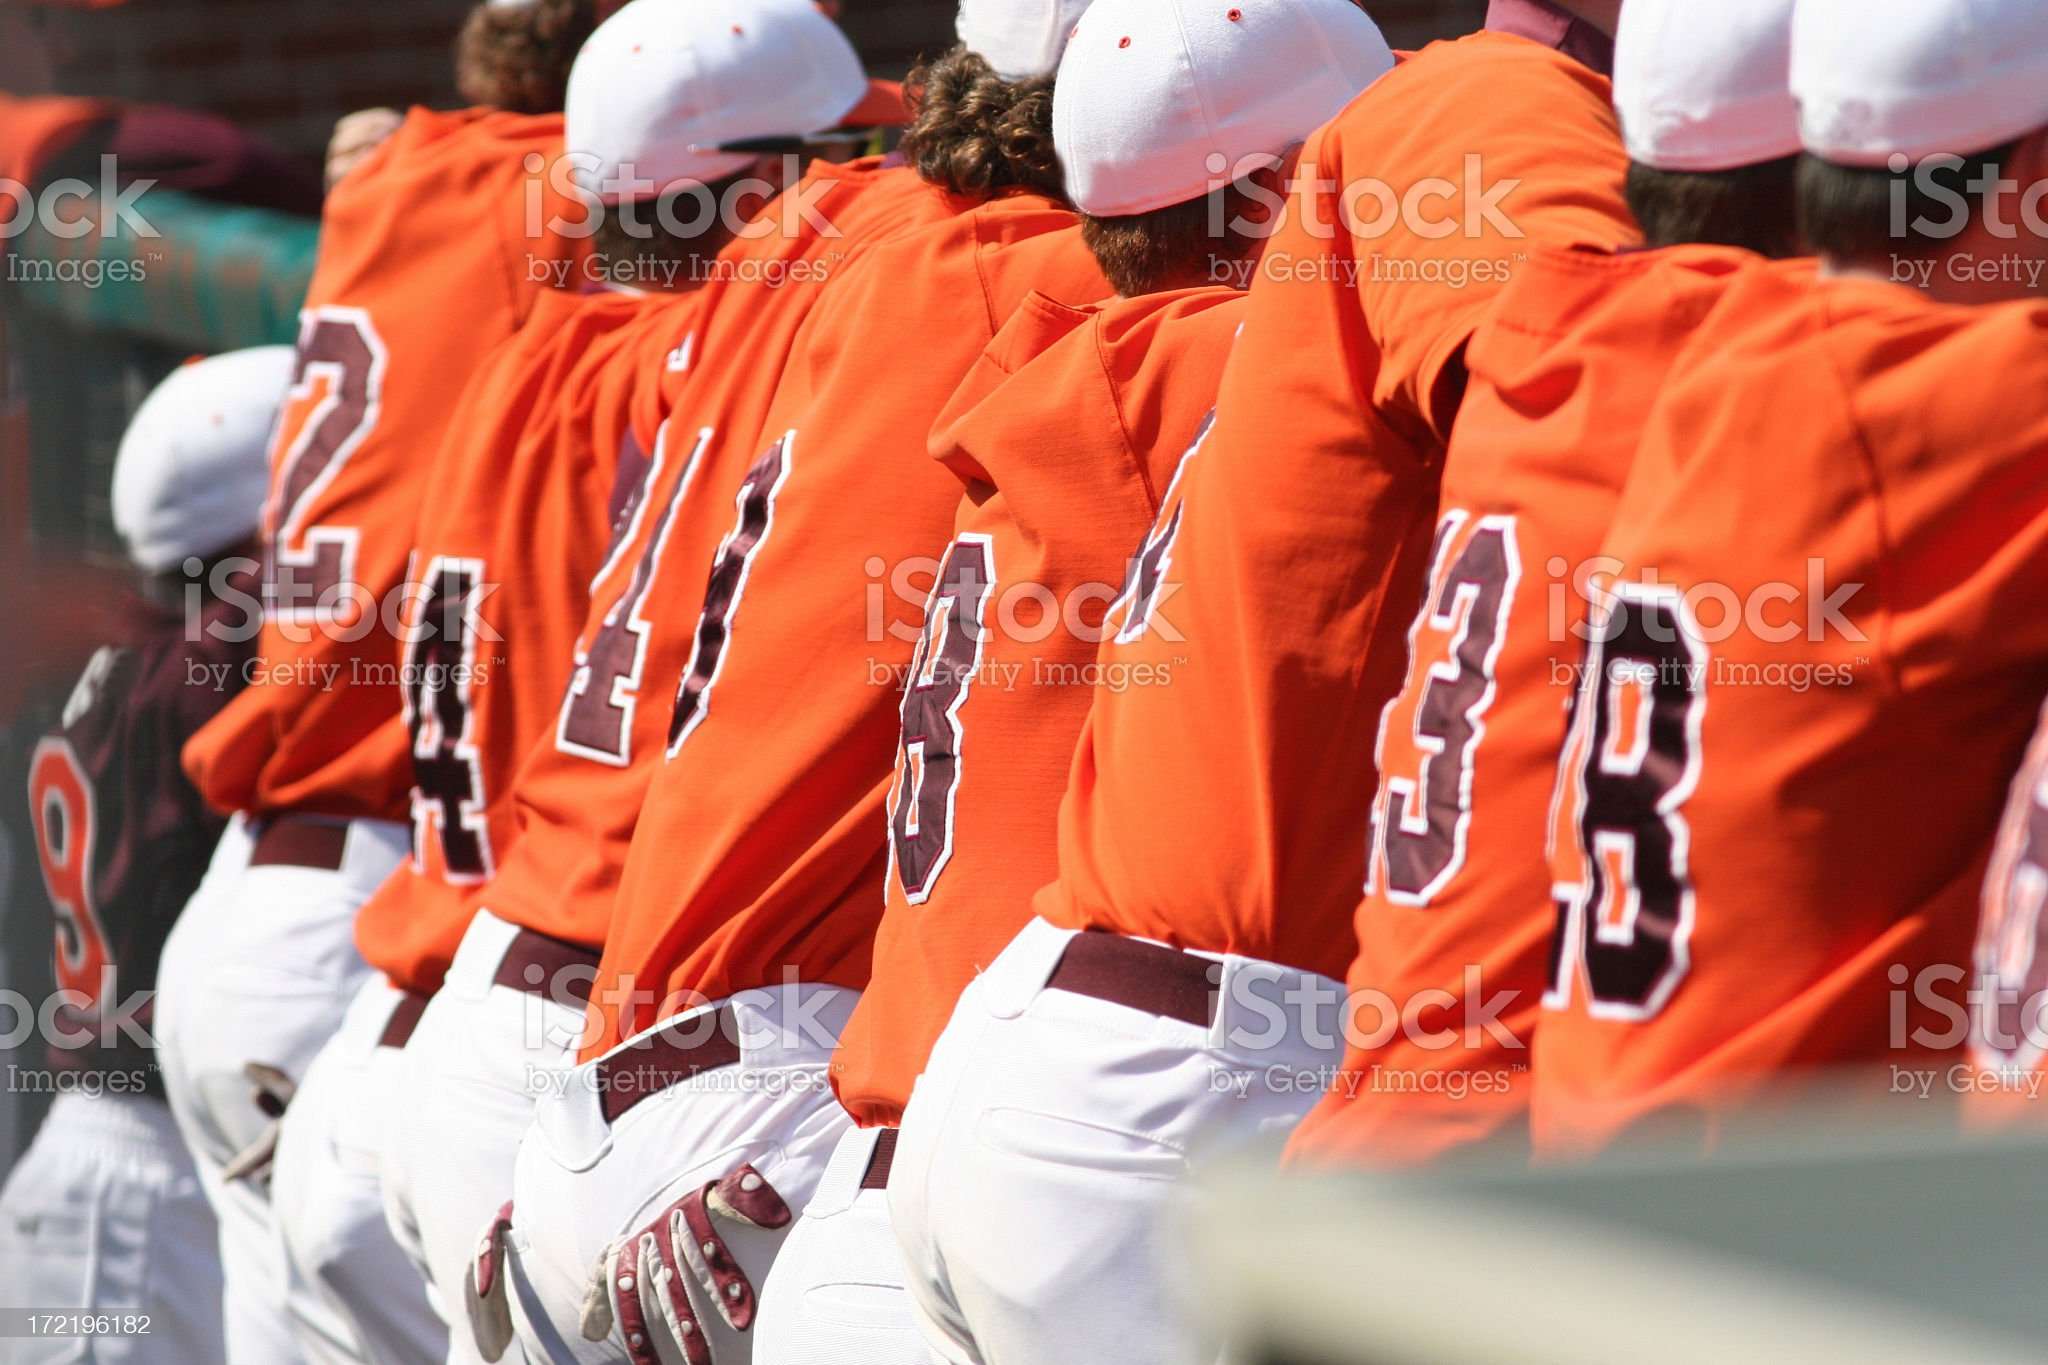 Back view of a baseball team in orange uniforms royalty-free stock photo